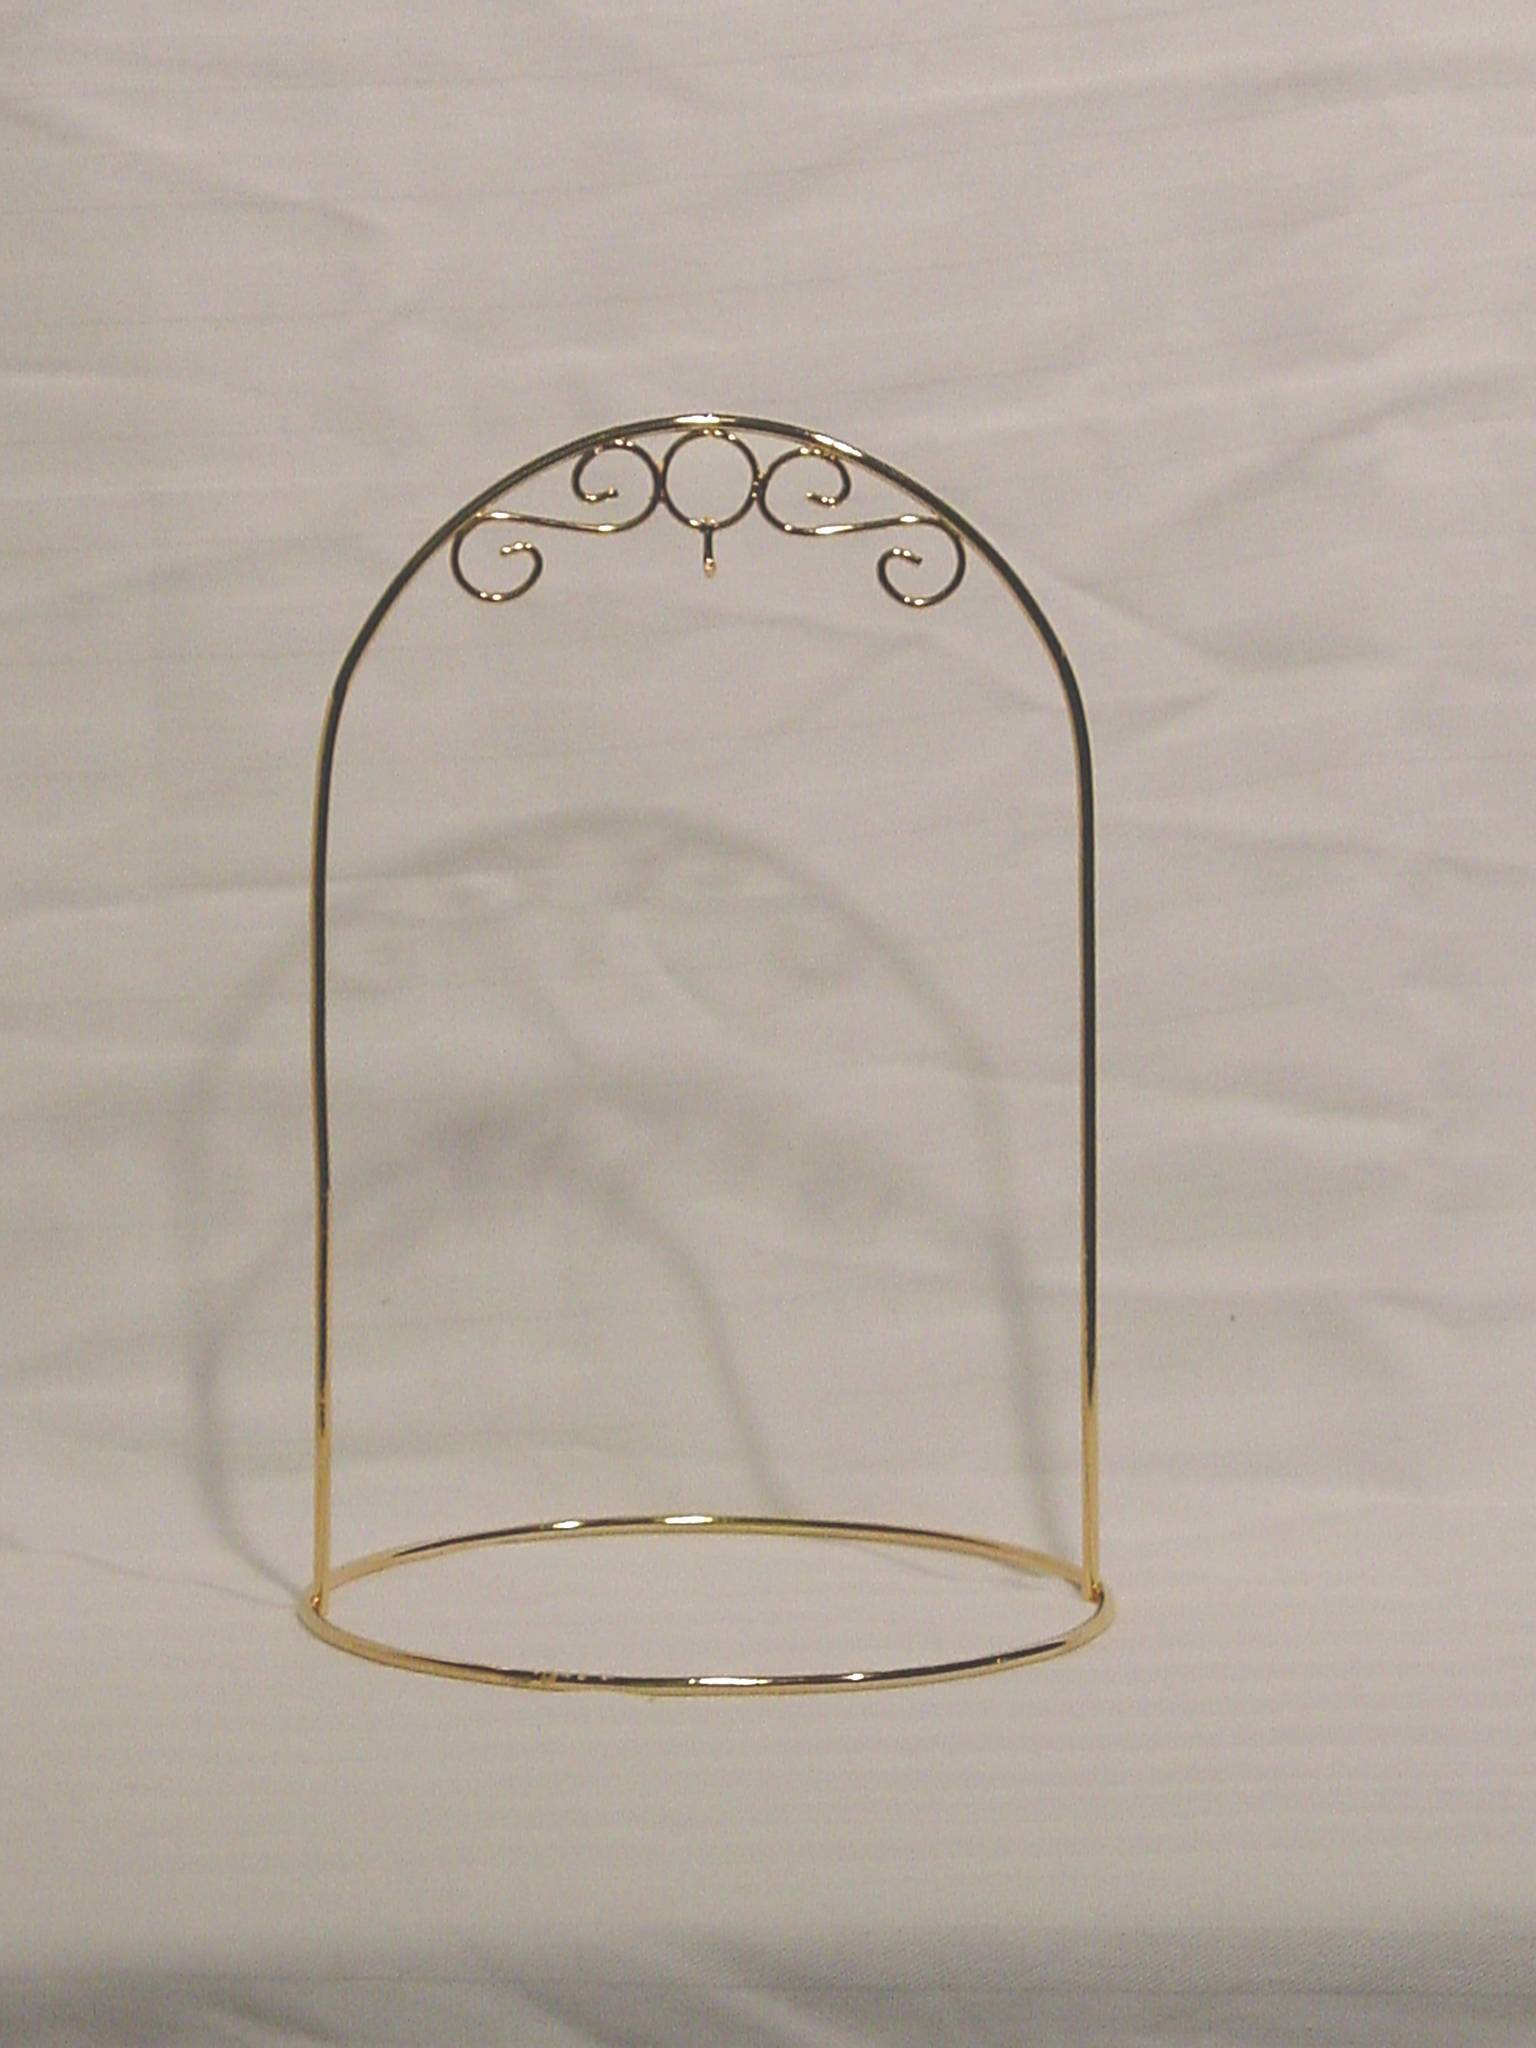 8 Inch Ornament Stand<br>Gold or Silver